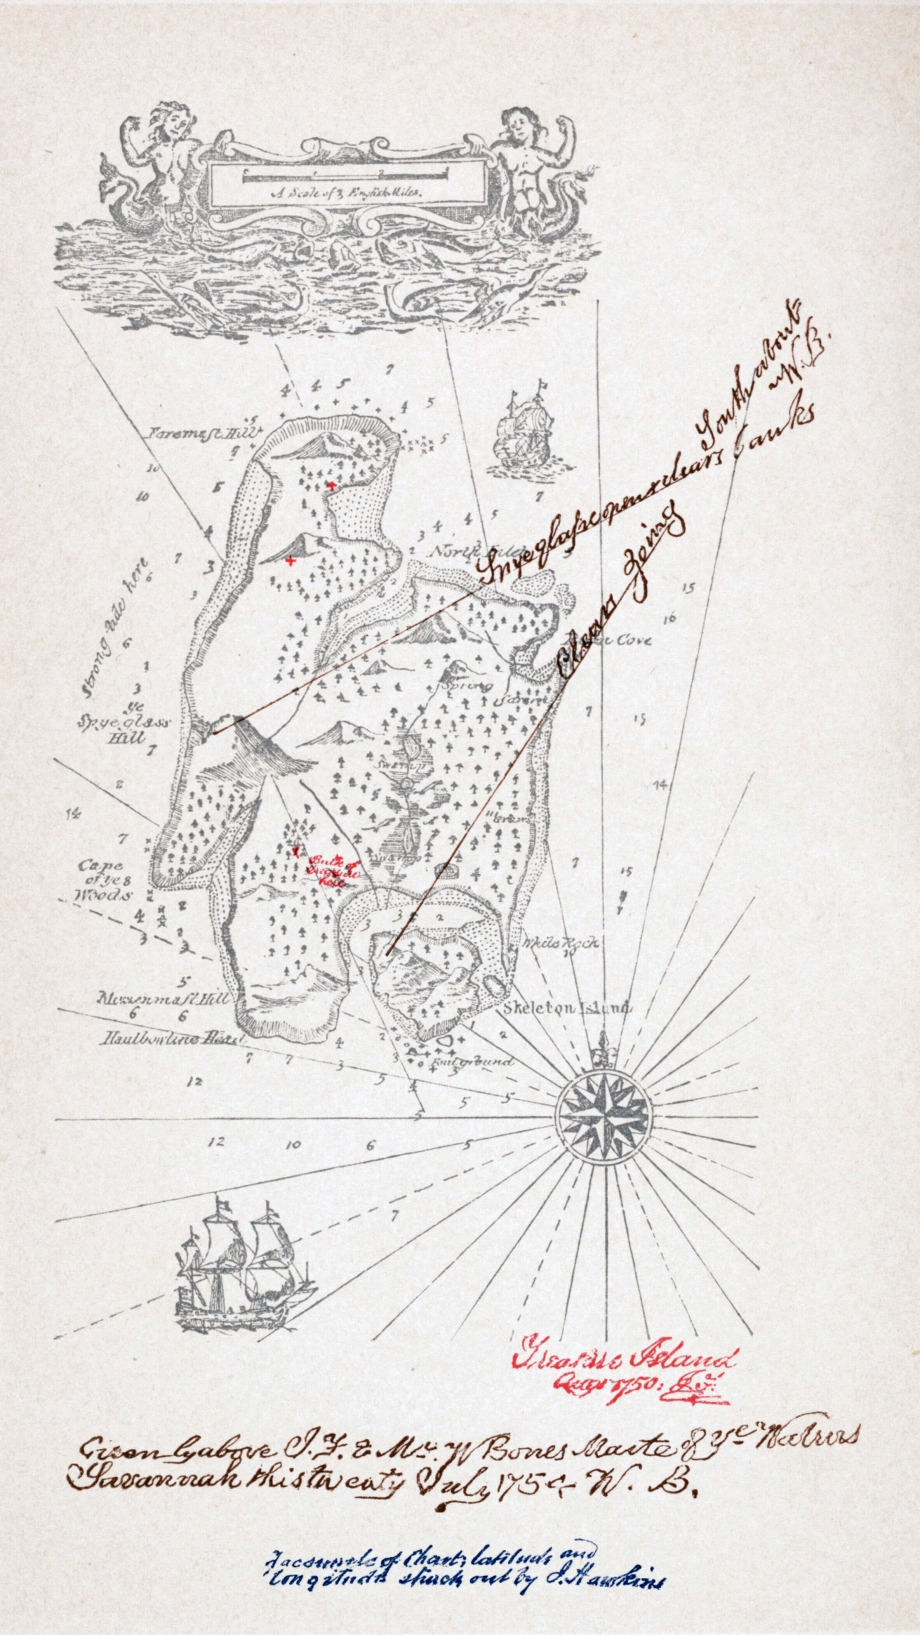 Treasure-island-map.jpg